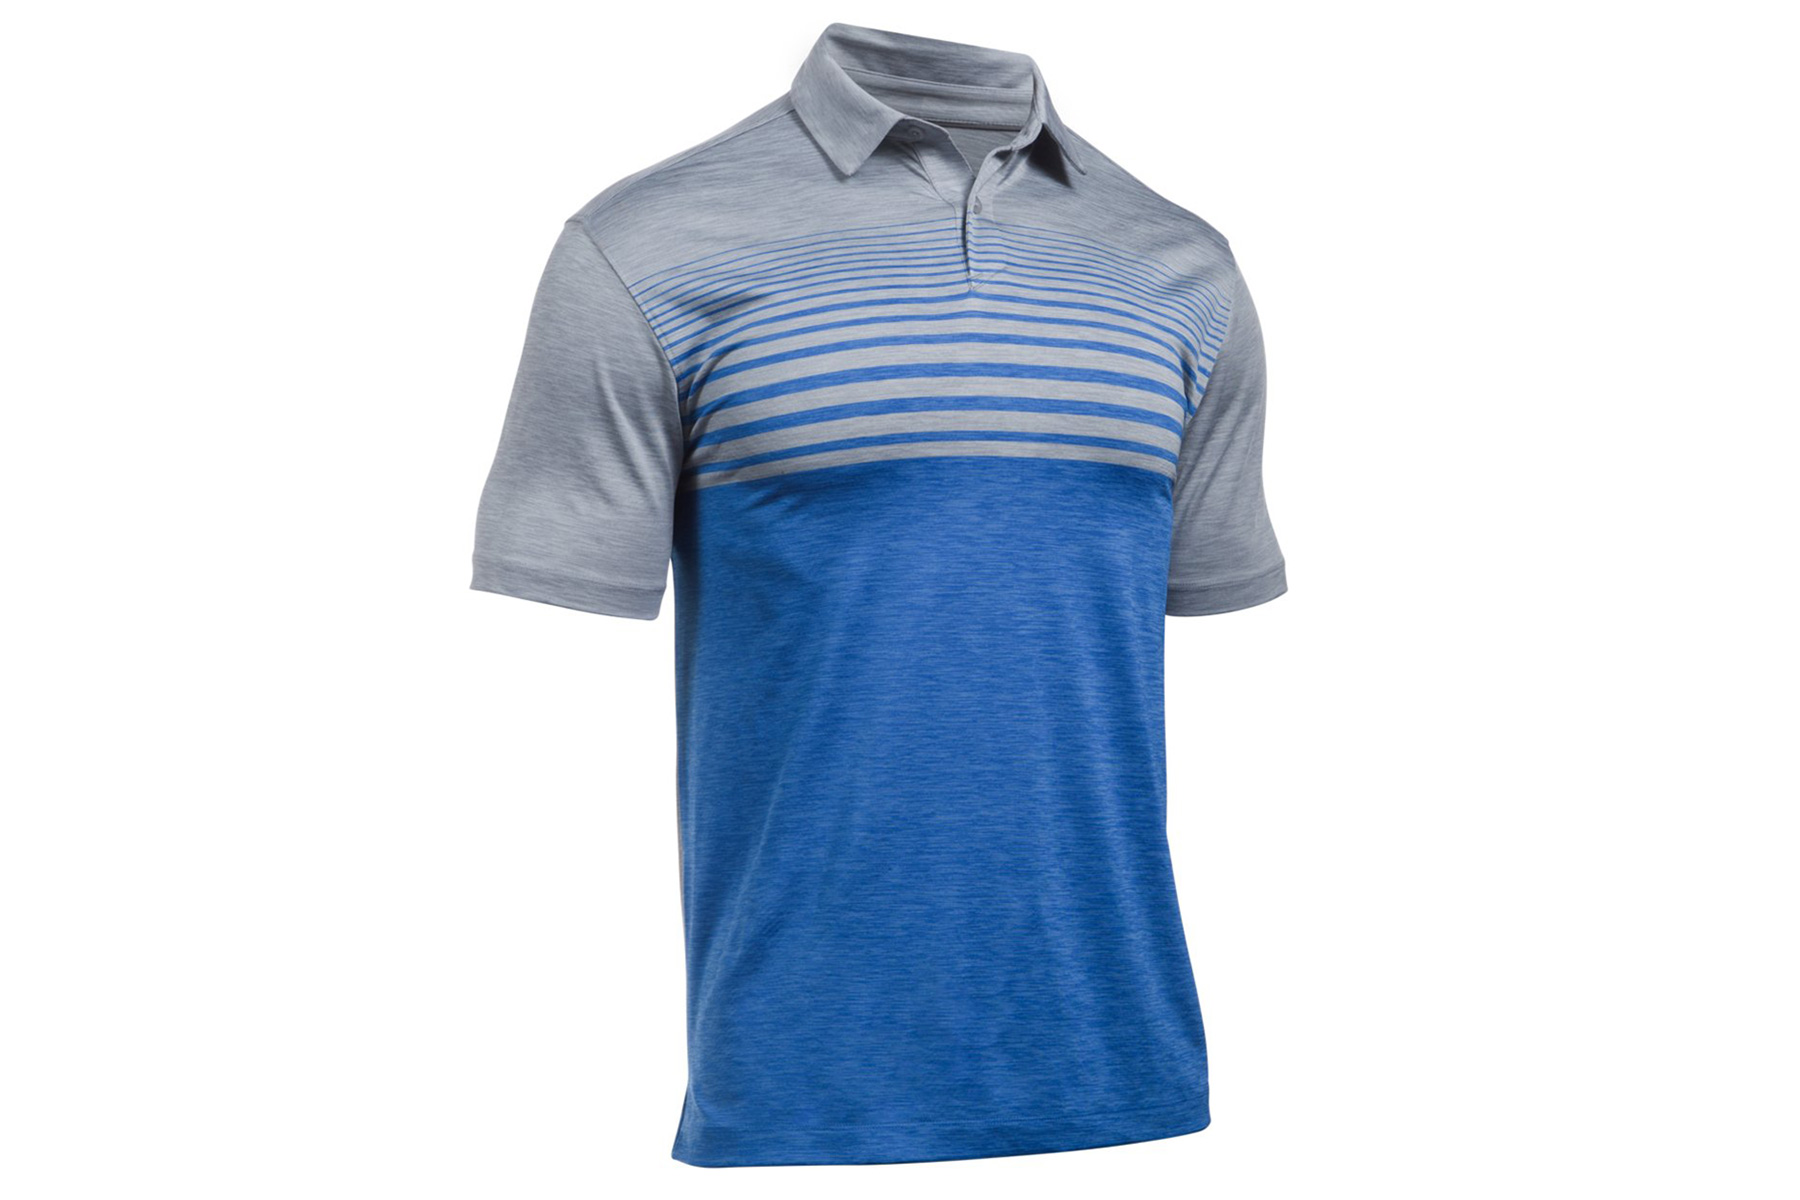 Under Armour Coolswitch Upright Stripe Polo Shirt From